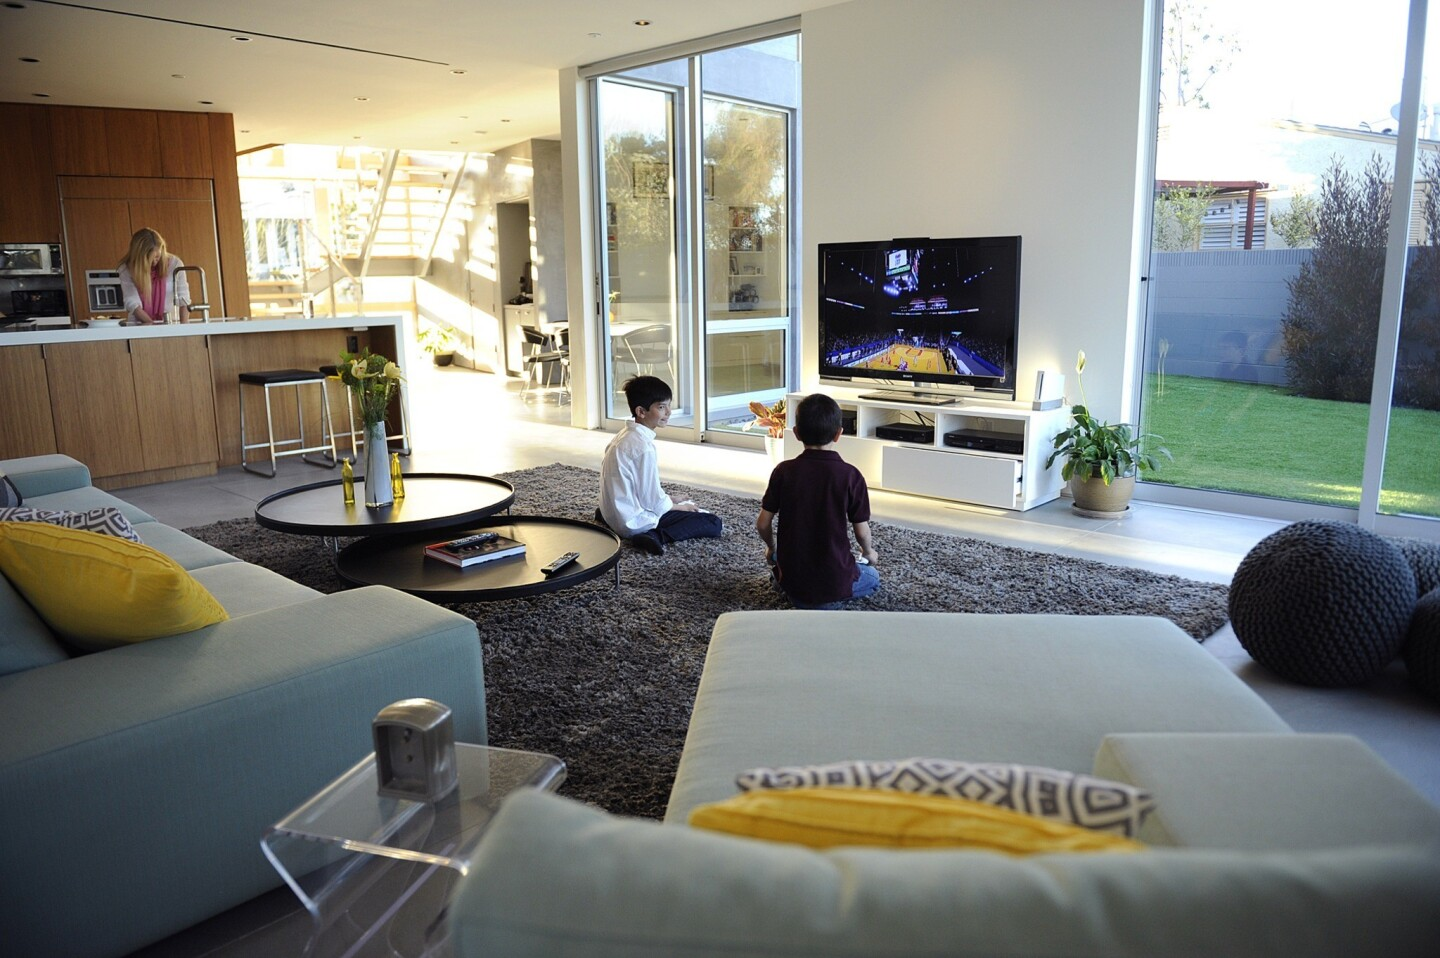 Tanner and Kyle Chen play a video game while their mom, Tiffany, makes dinner. The kitchen sink is the command and control center, with sightlines to wherever the kids are playing — family room or backyard.